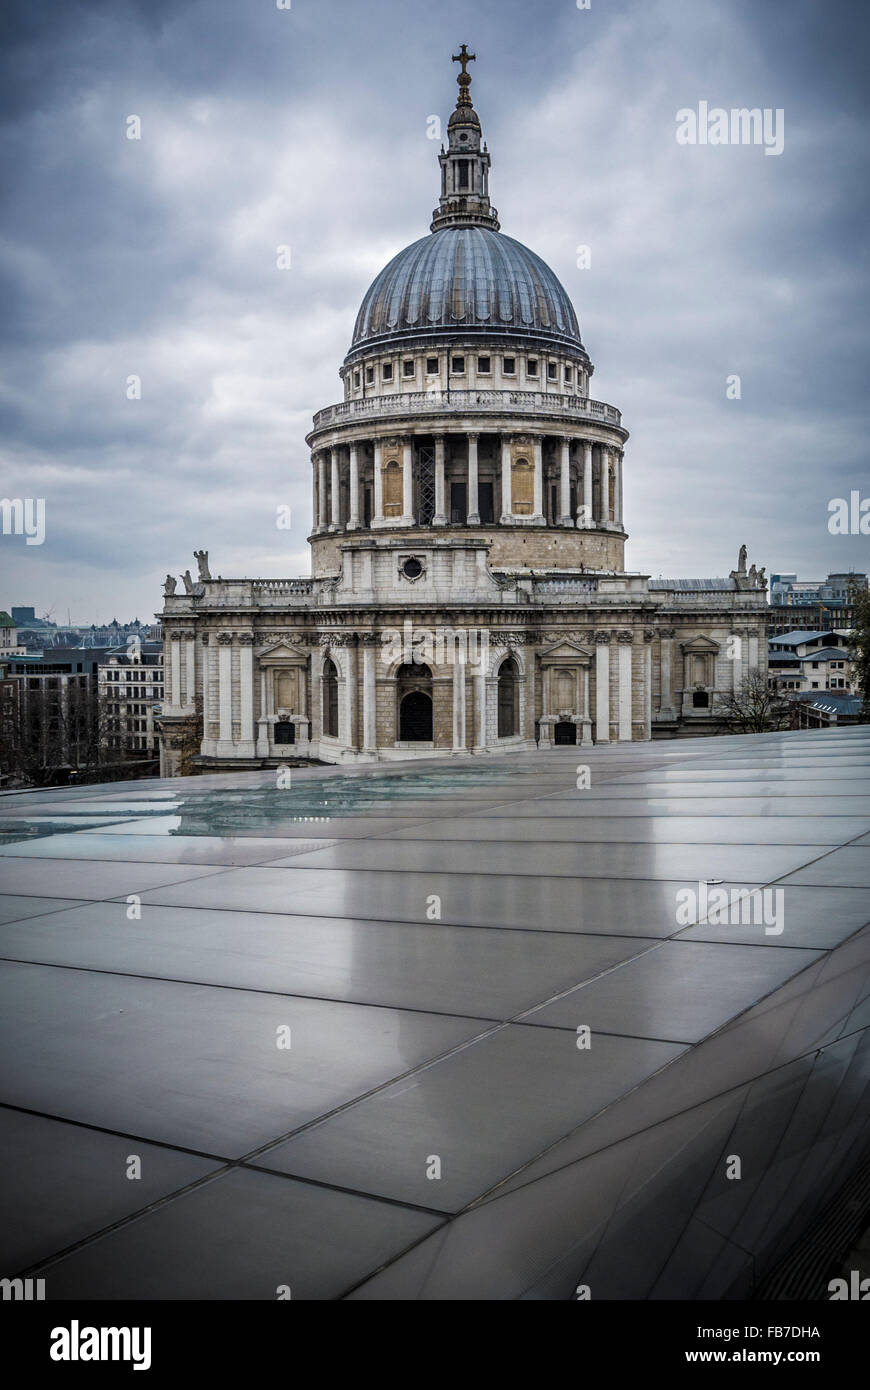 St Paul's Cathedral viewed from One New Change, London, UK. - Stock Image